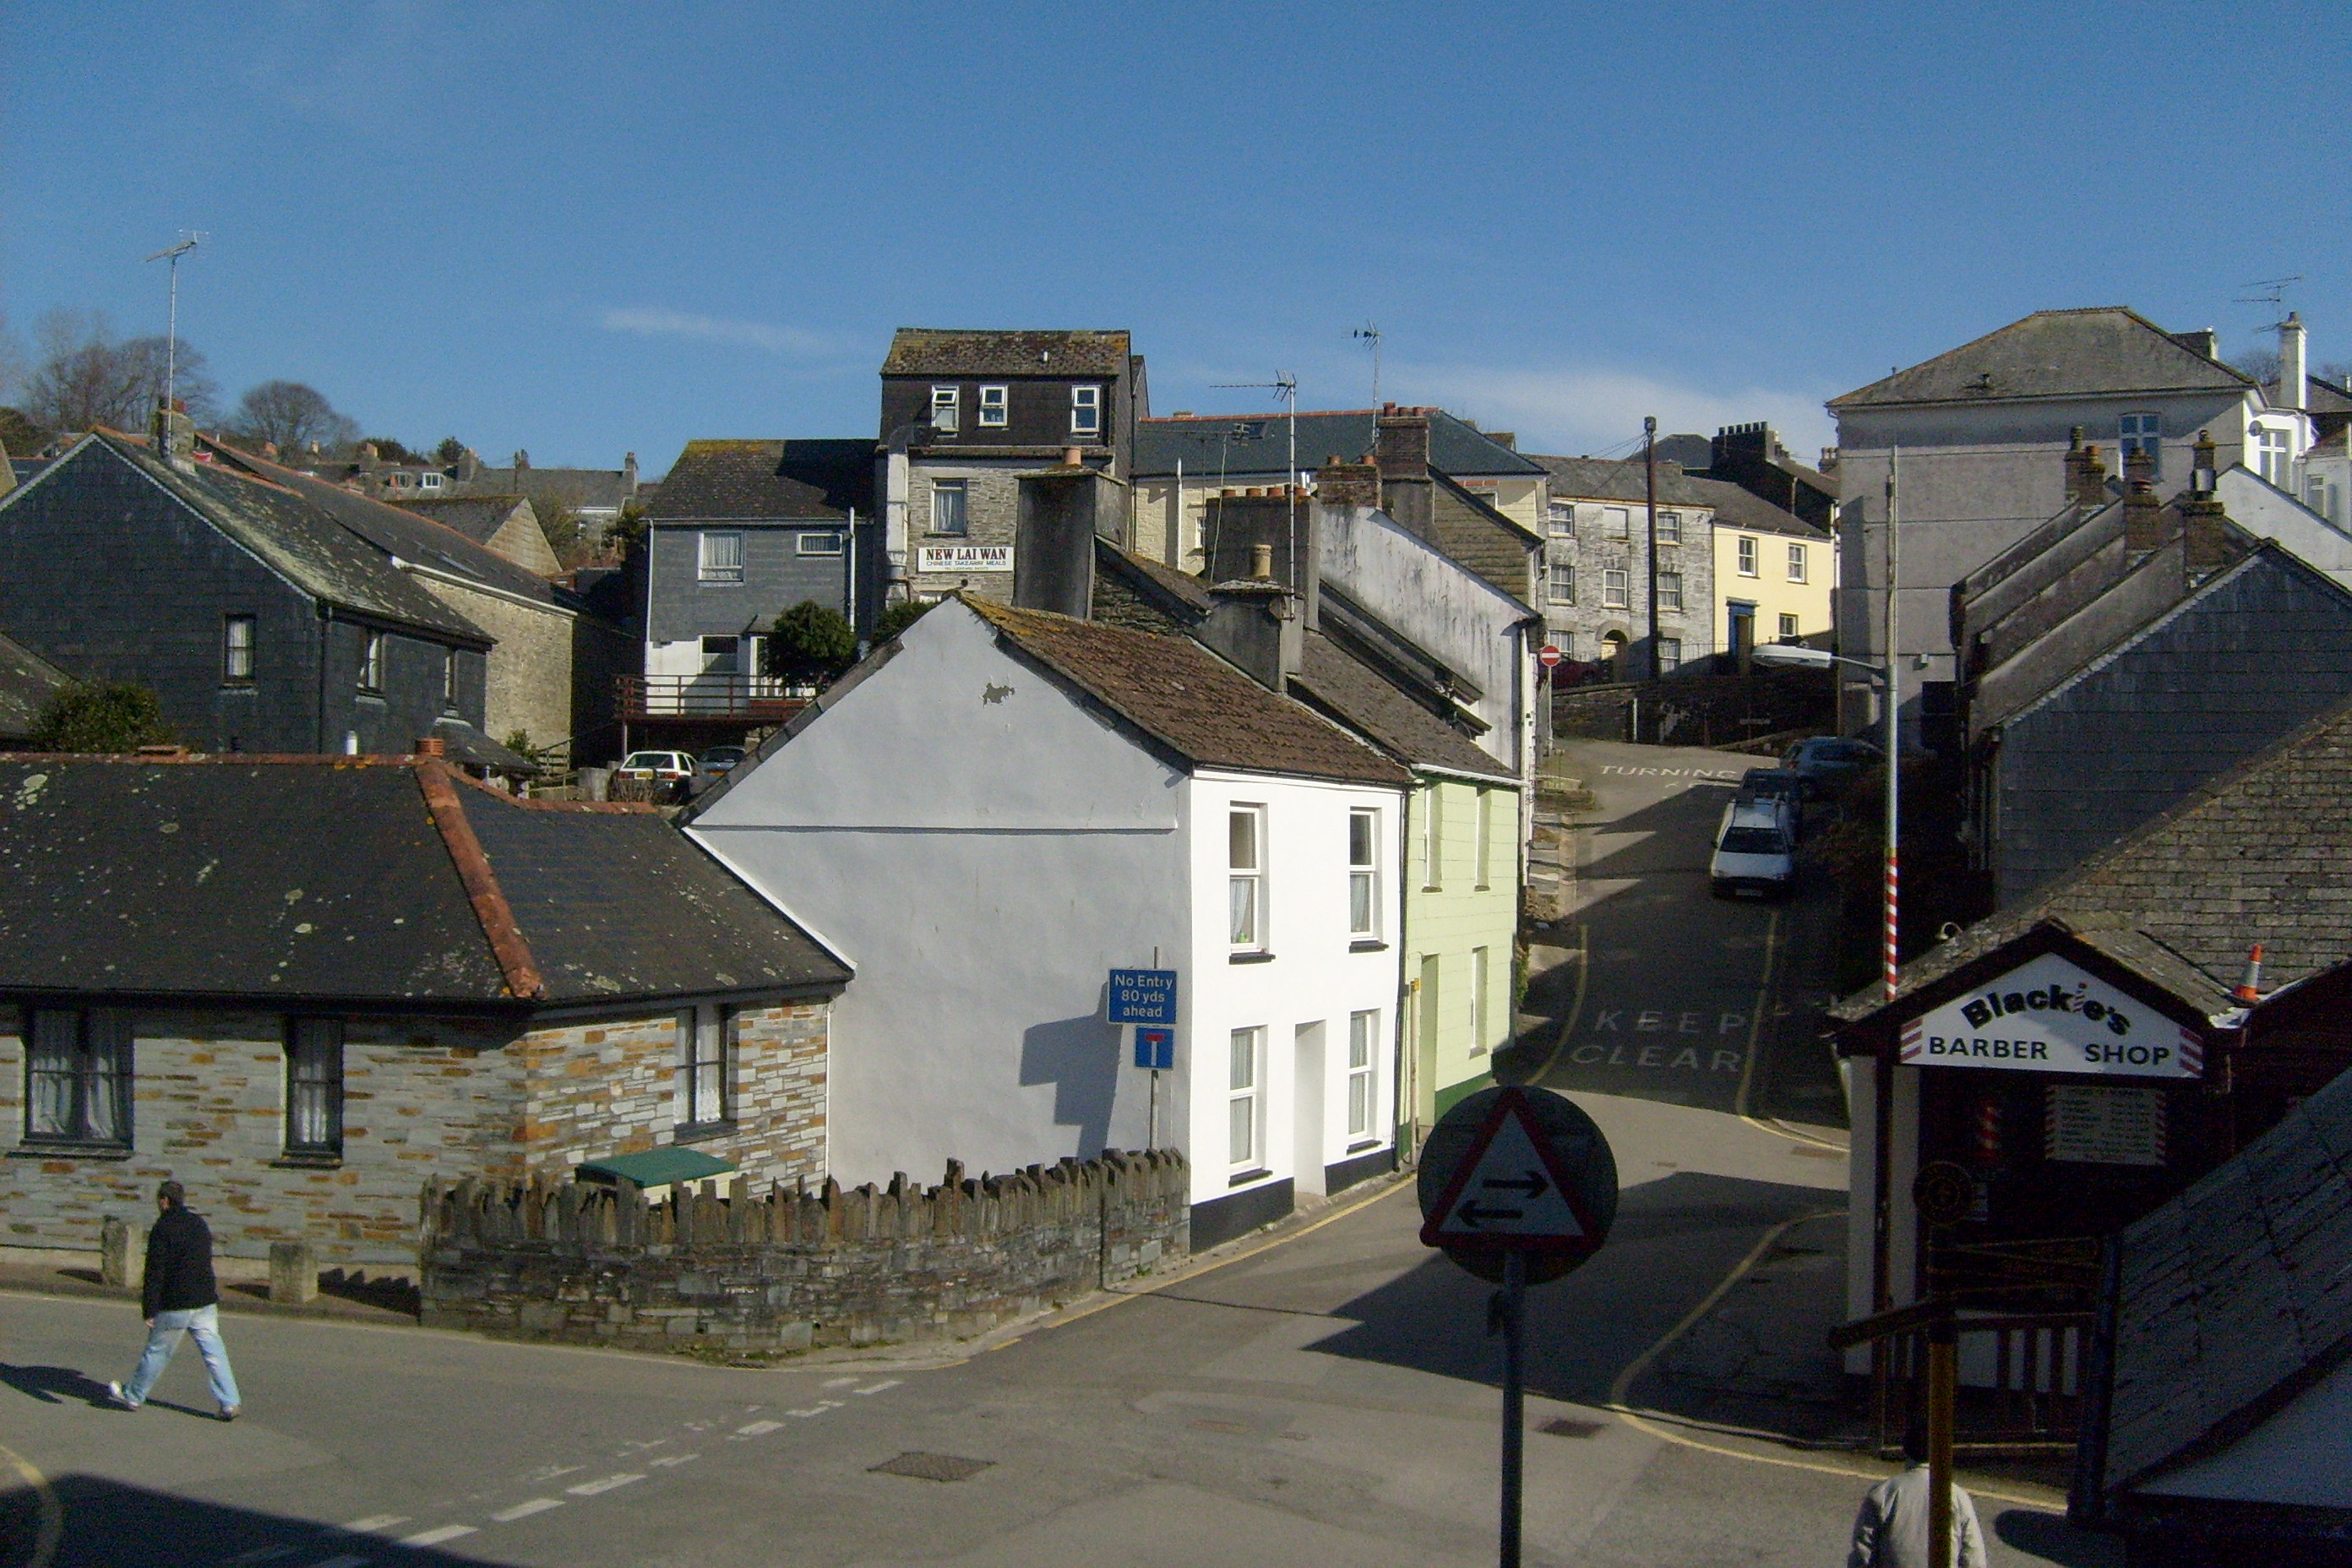 3 Bedroom Furnished House To Rent On Cannon Hill, Liskeard, PL14 By Private  Landlord ...